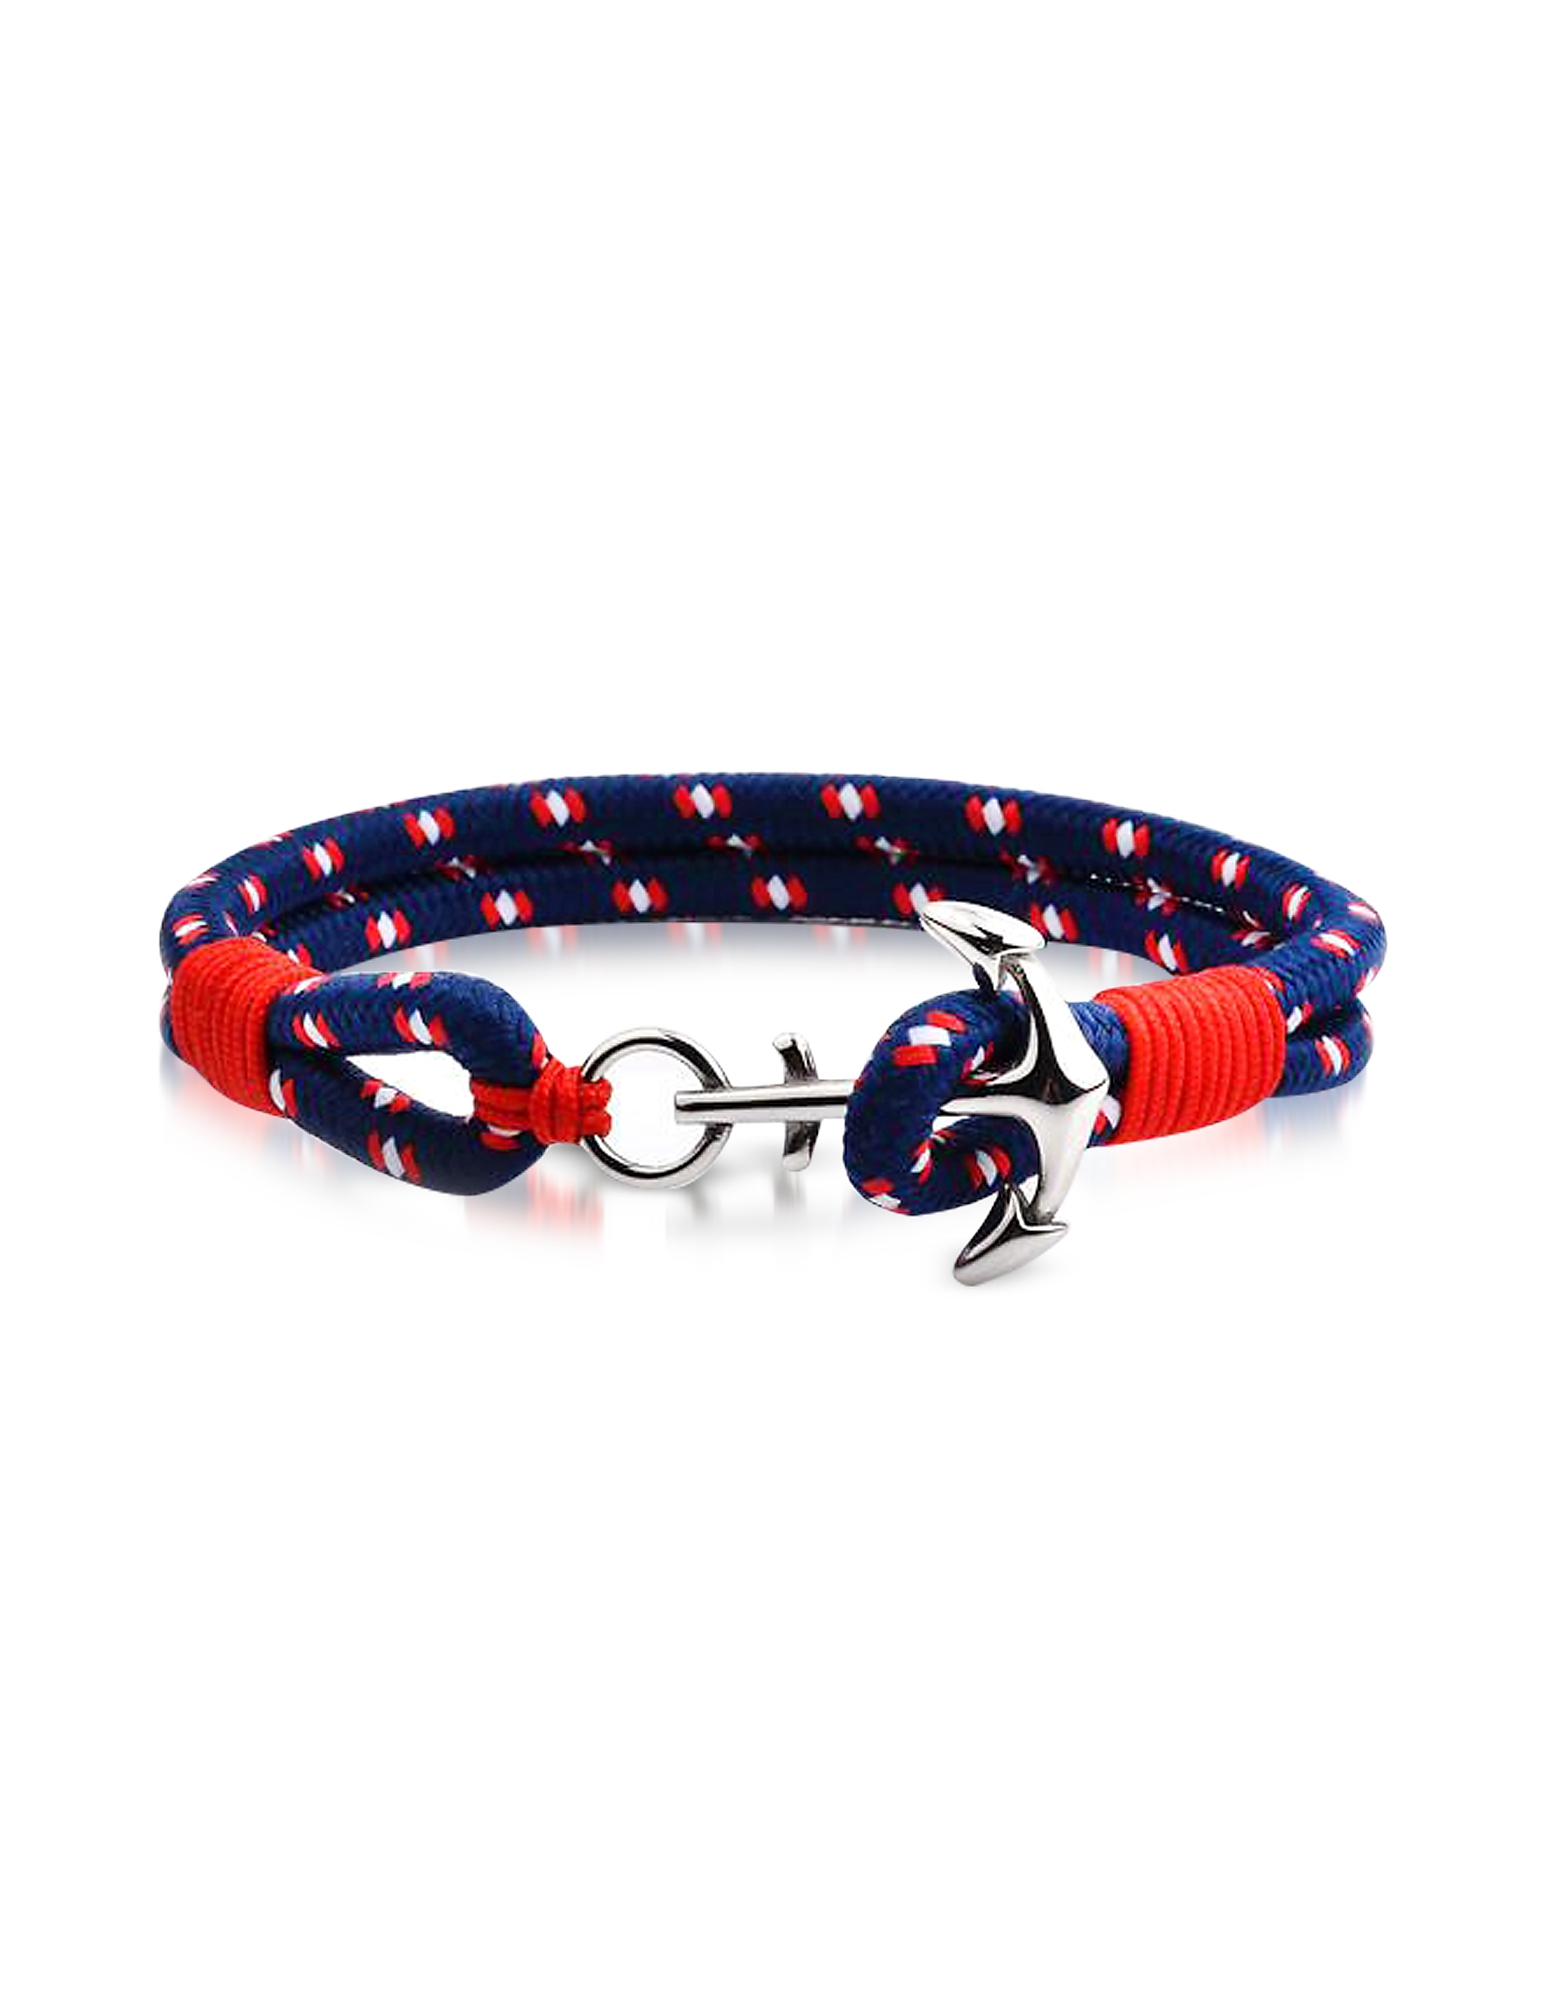 Forzieri Men's Bracelets, Blue and Red Men's Rope Bracelet